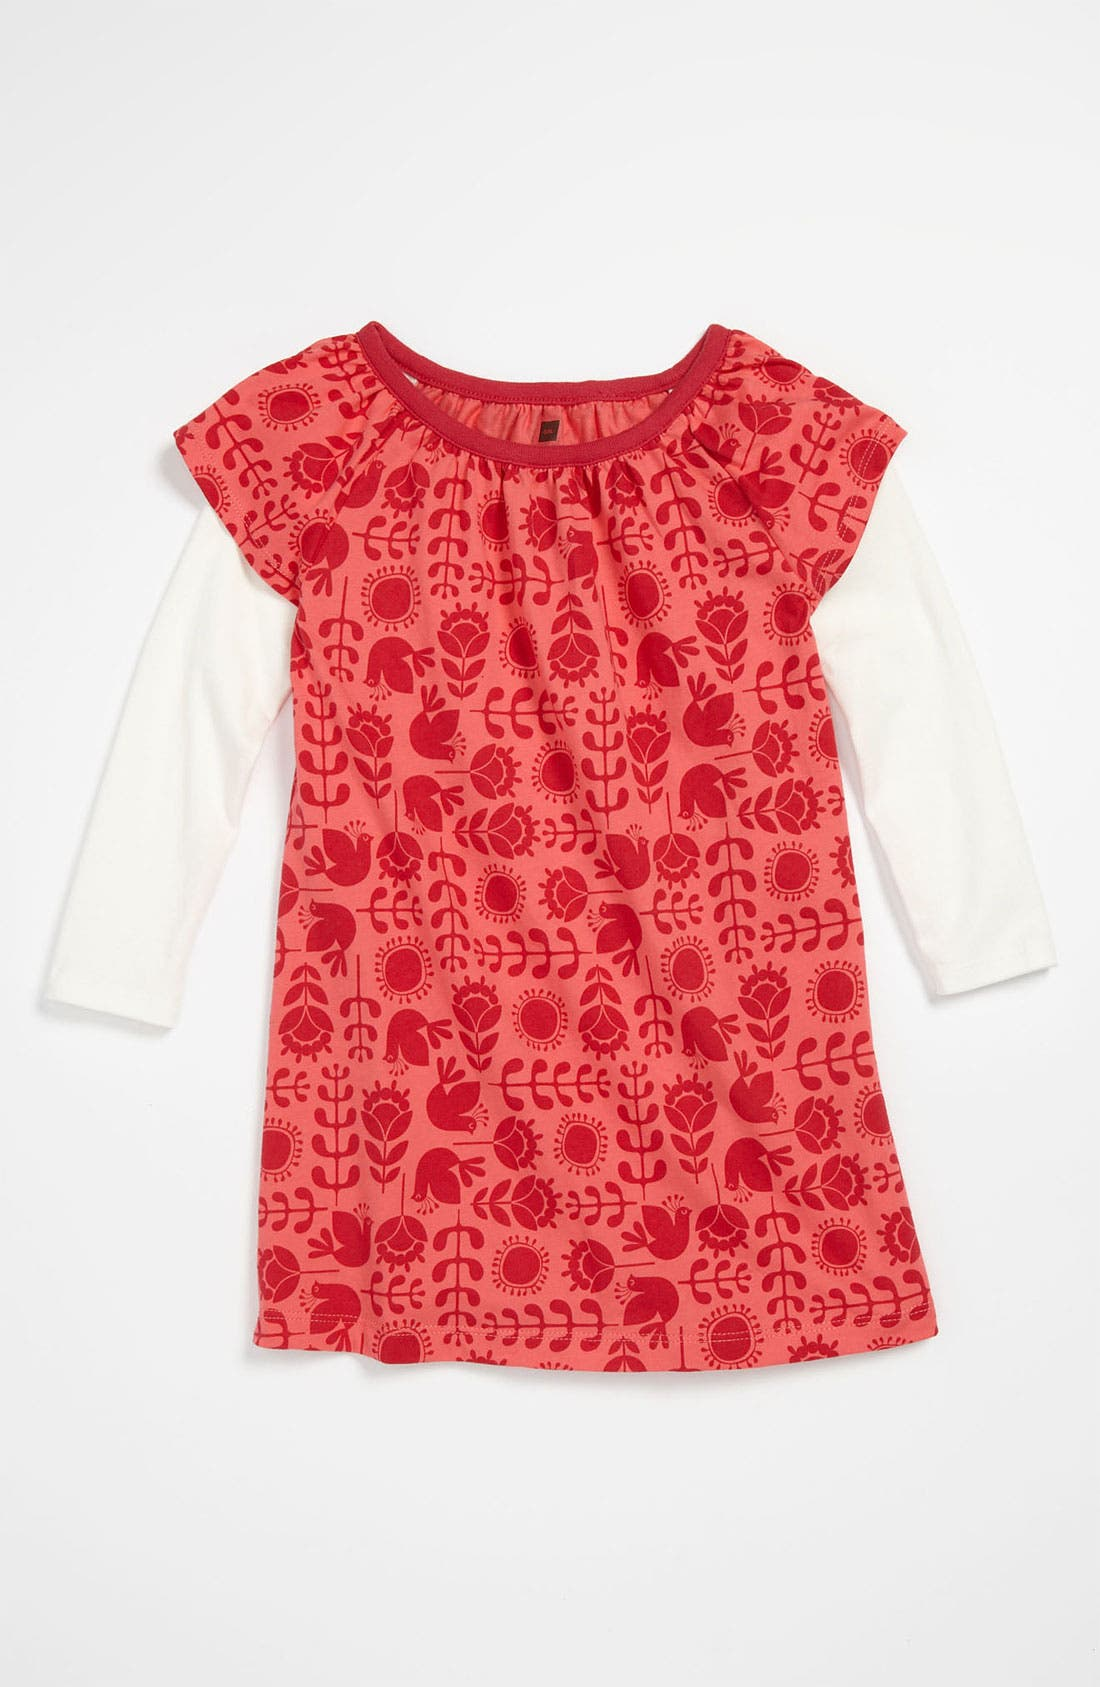 Alternate Image 1 Selected - Tea Collection 'Swedish Lark' Dress (Toddler)